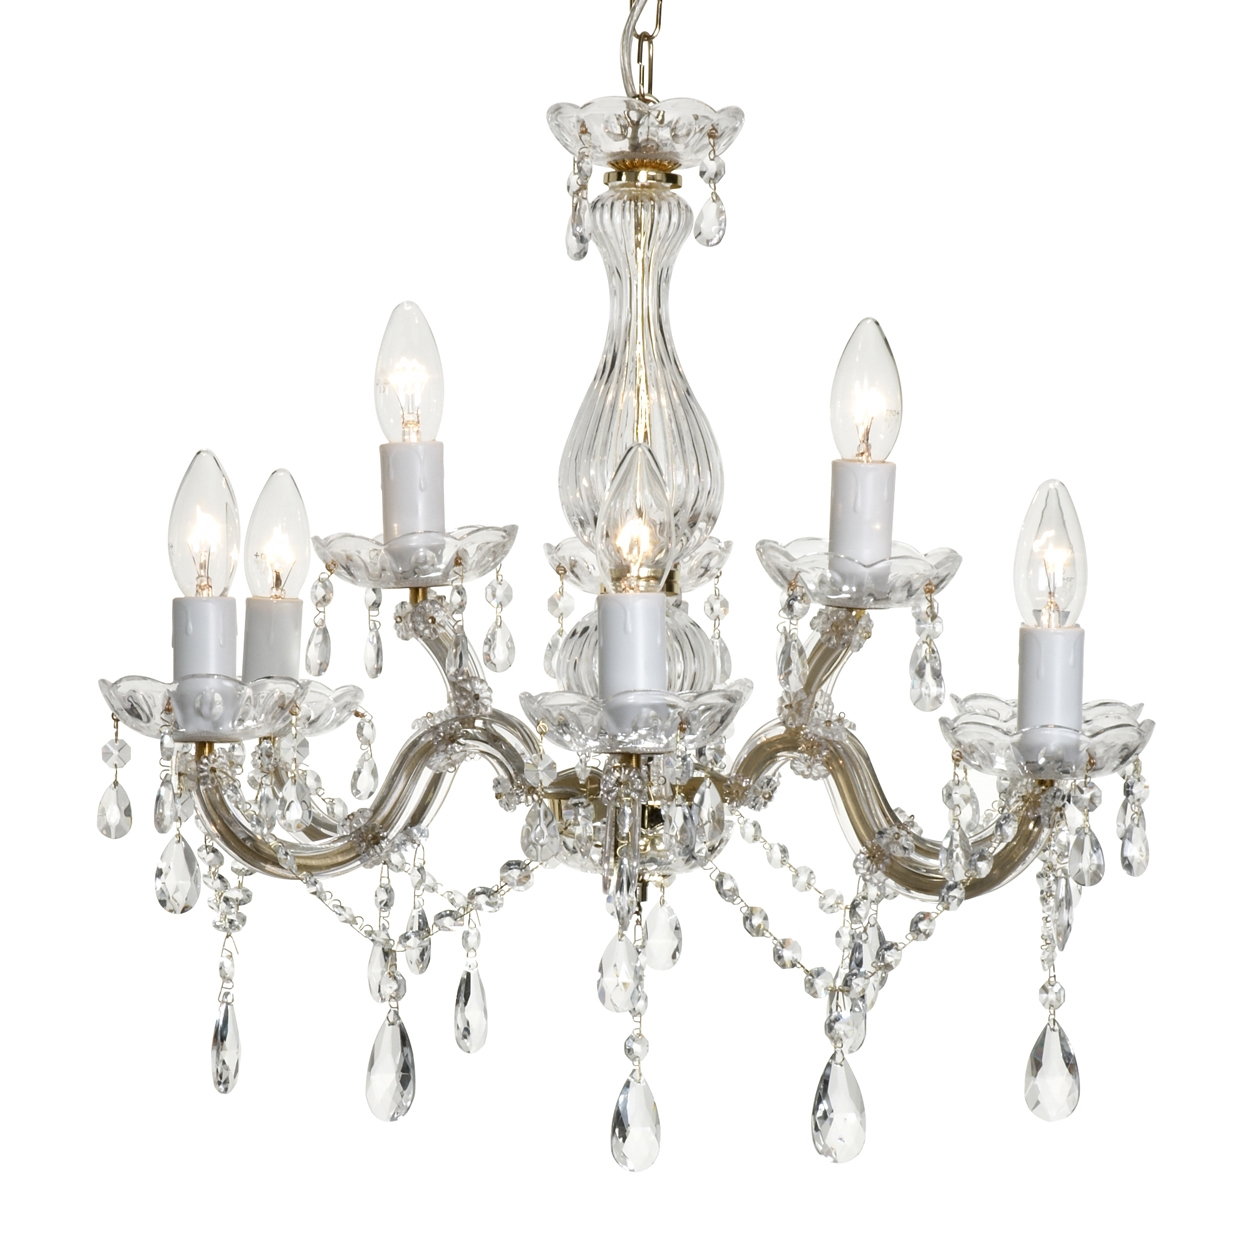 Crystal Chandelier Home Design Ideas Within Crystal Gold Chandelier (Image 10 of 15)